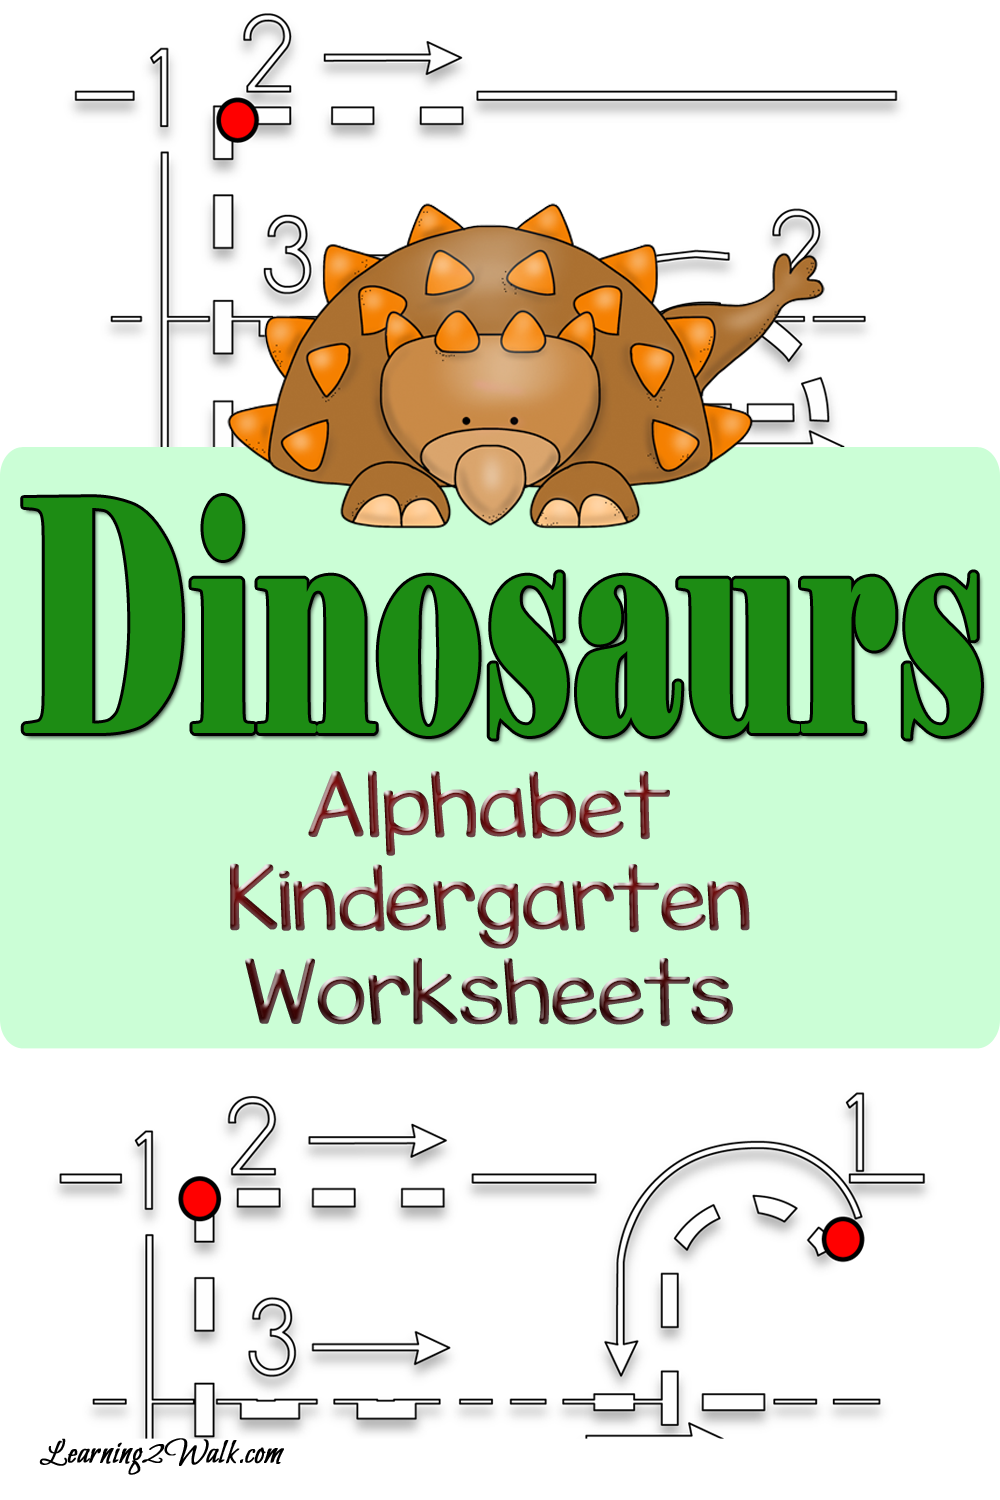 Dinosaurs Free Preschool Printable Worksheets | For kindergarten ...